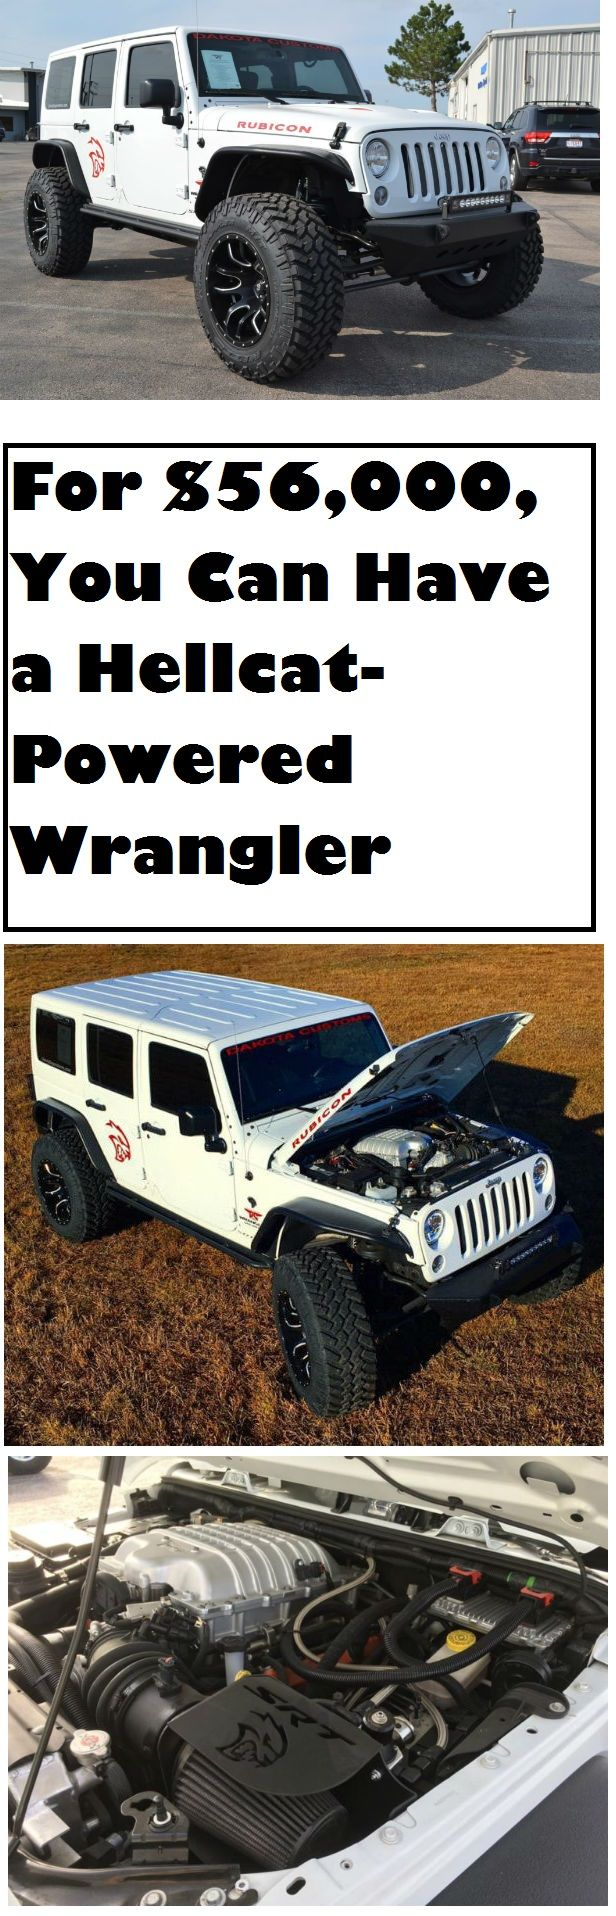 If you've ever had the opportunity to drive both a Hellcat (Charger or Challenger) and Jeep Wrangler, you can certainly appreciate each vehicle's individual capability. The Hellcat and its pavement-scorching707 horsepower is scary fun and always good for a few smiles and close calls. It's also common knowledge thatthe Jeep Wrangler is arguably the …